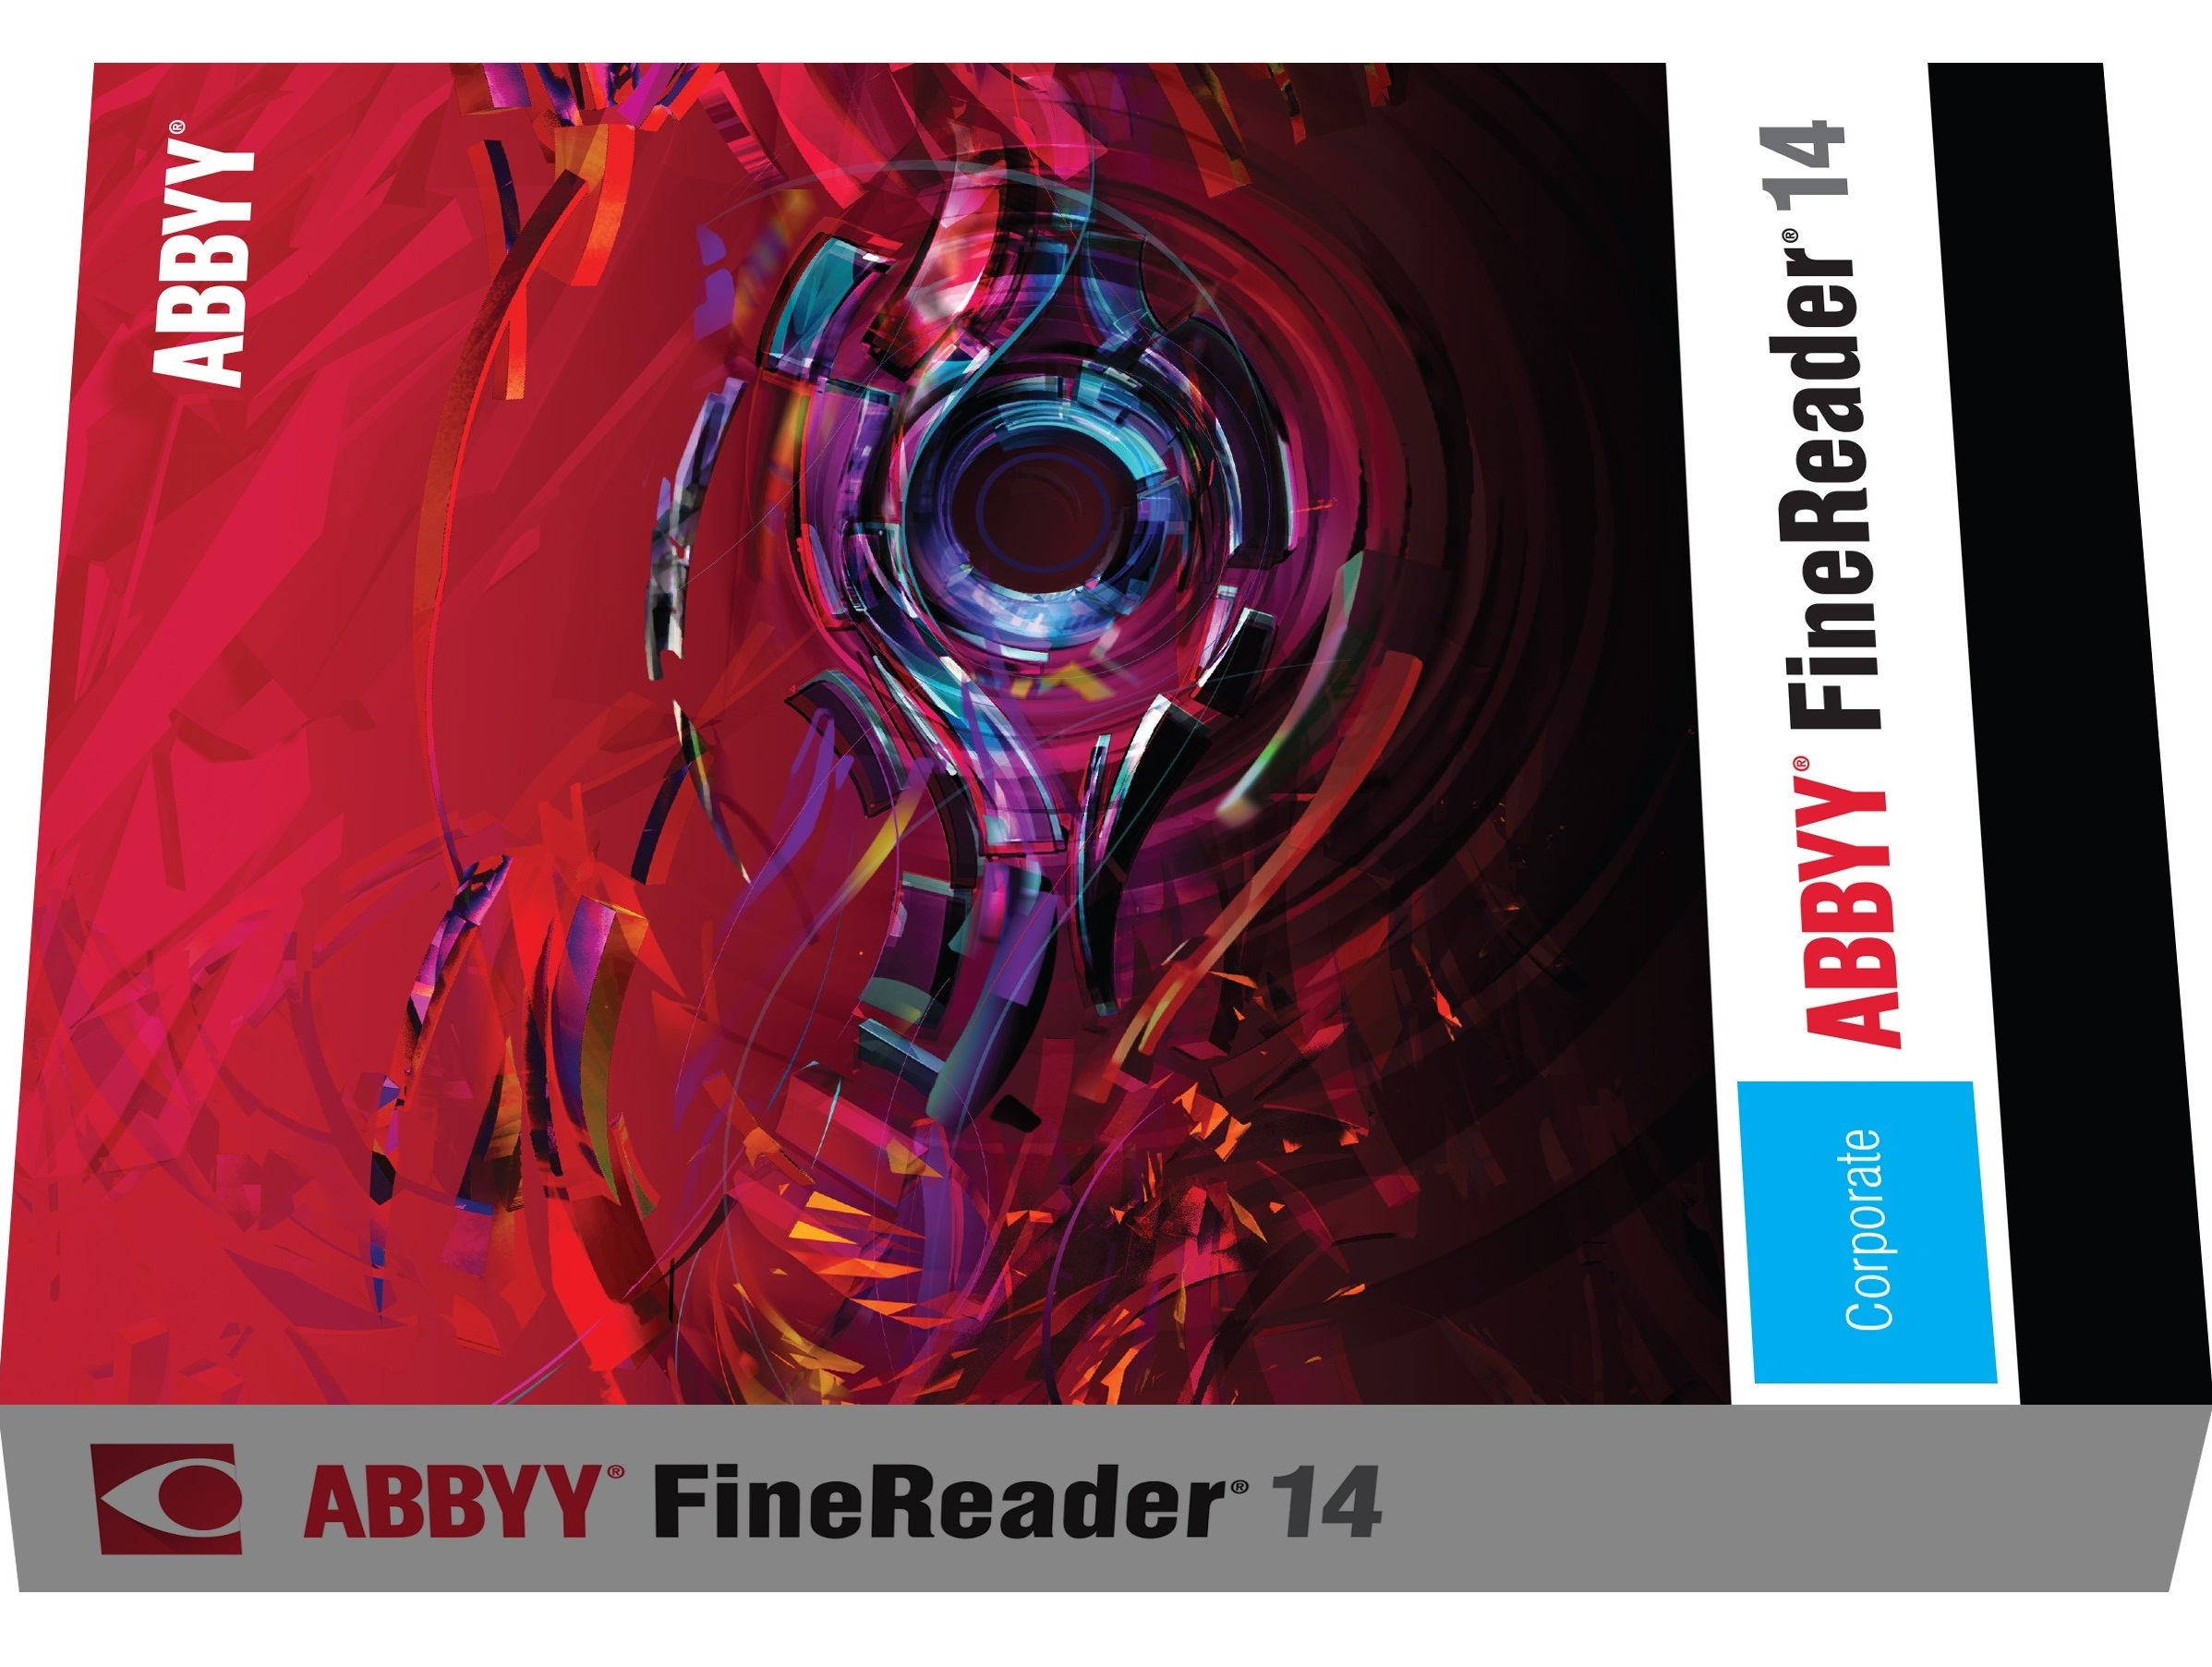 abbyy finereader 14 full seri key license portable